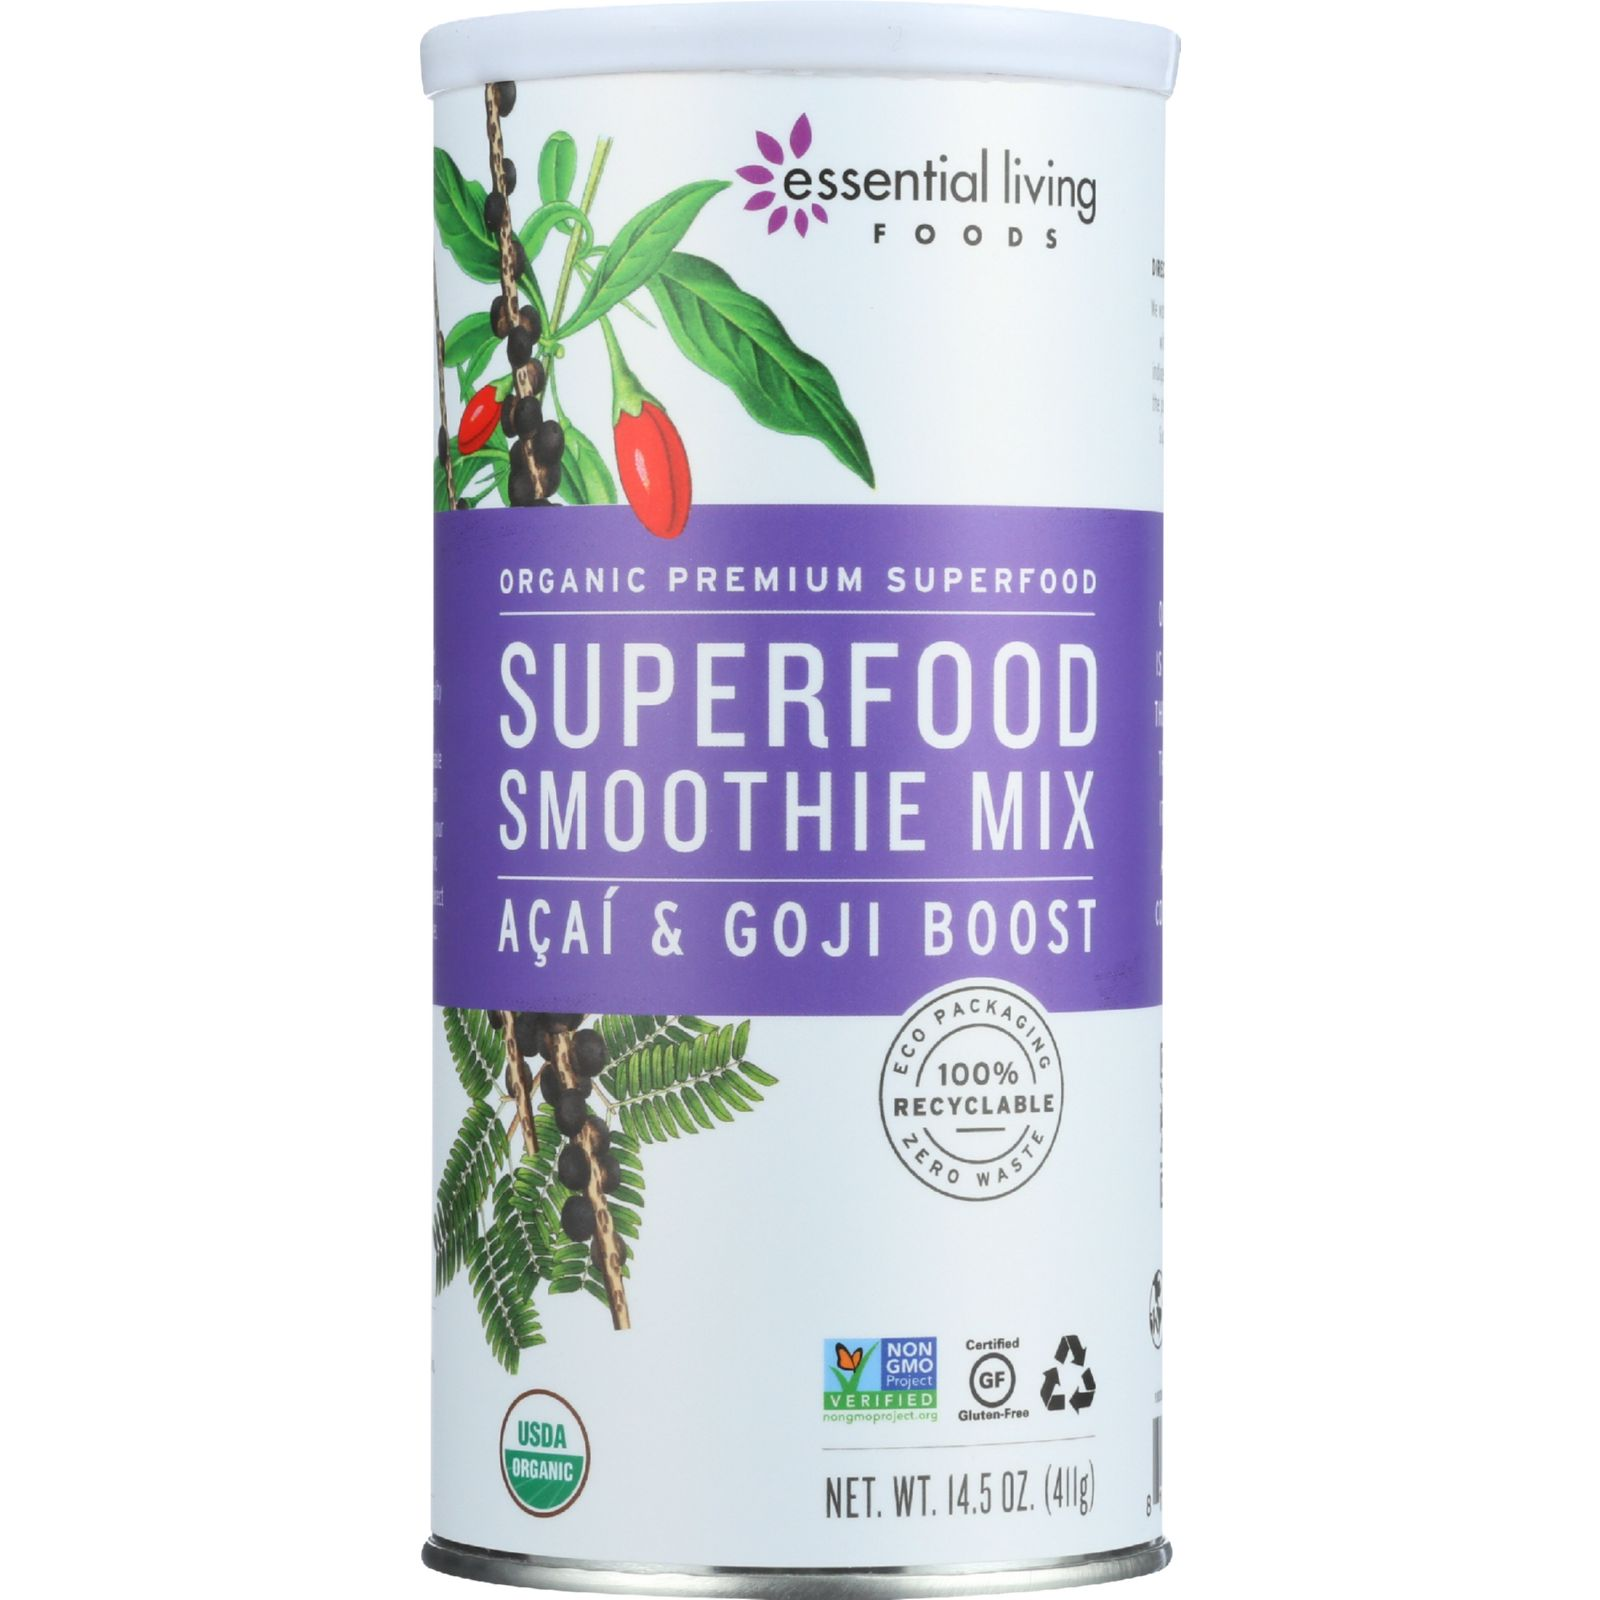 Essential Living Foods Smoothie Mix   Organic   Superfood   Acai And Goji  Boost   14.5